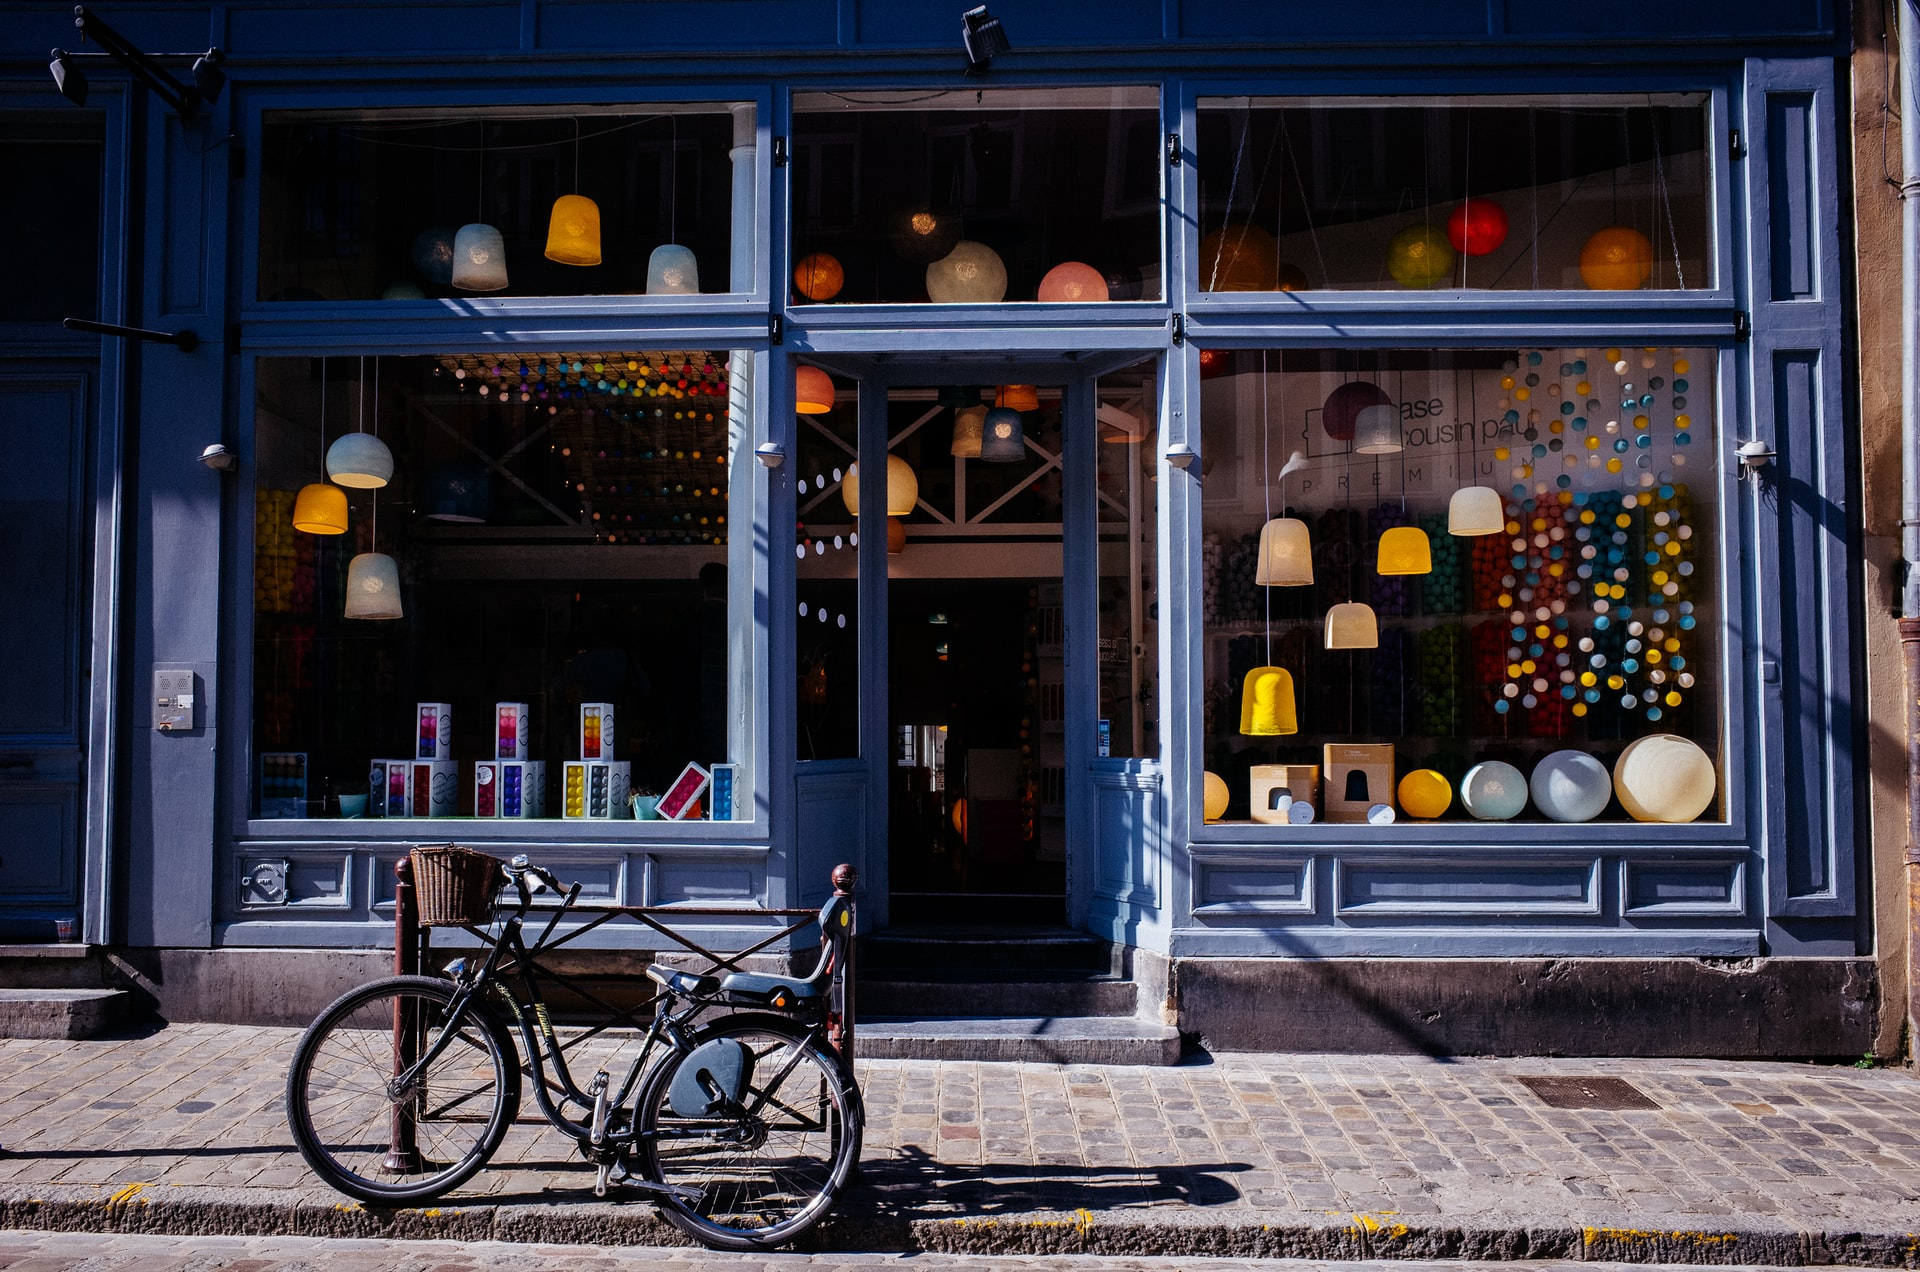 a blue boutique storefront with a bike in front